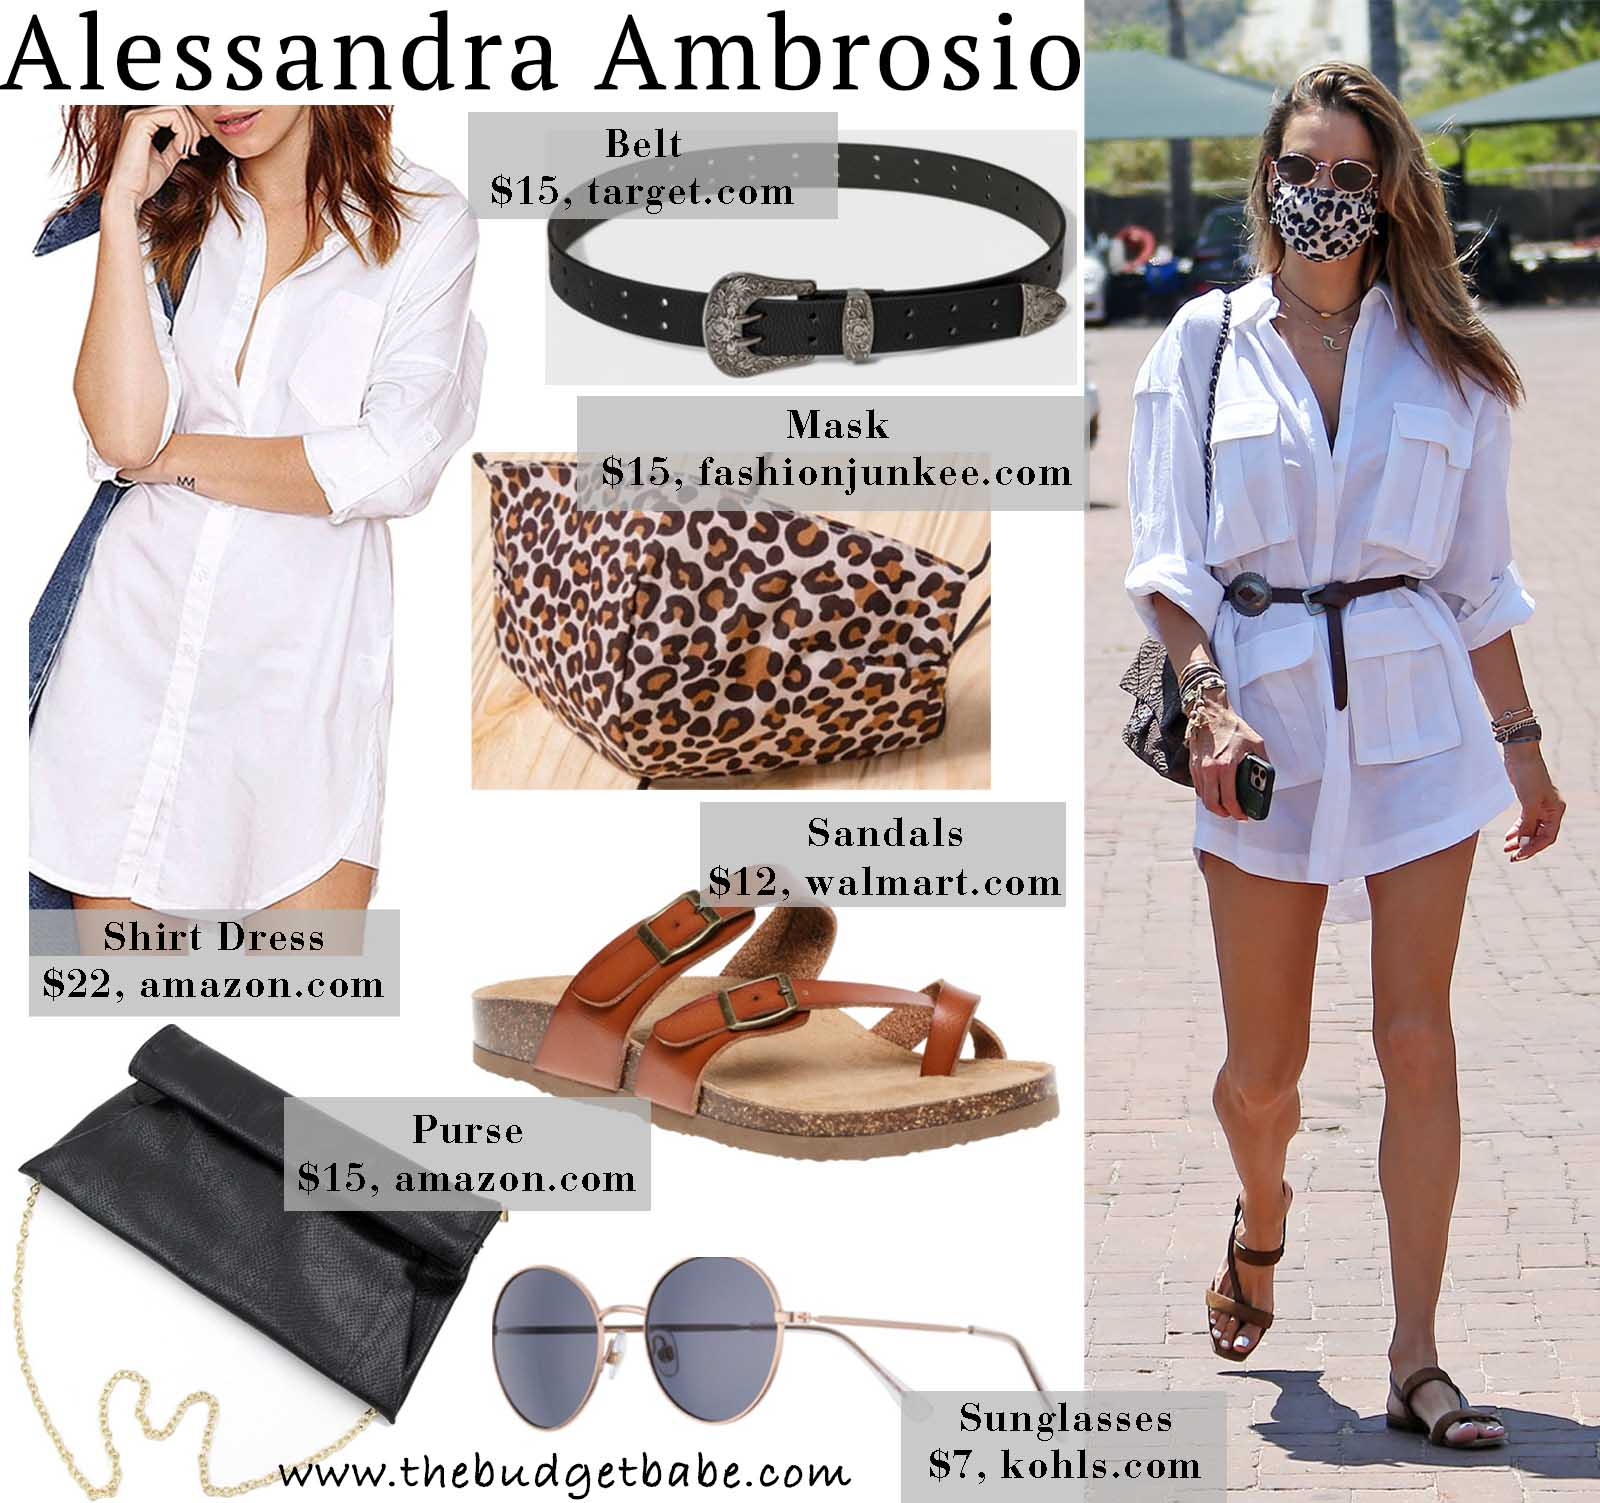 Alessandra Ambrosio's Button Down Tunic Dress and Leather Sandals Look for Less